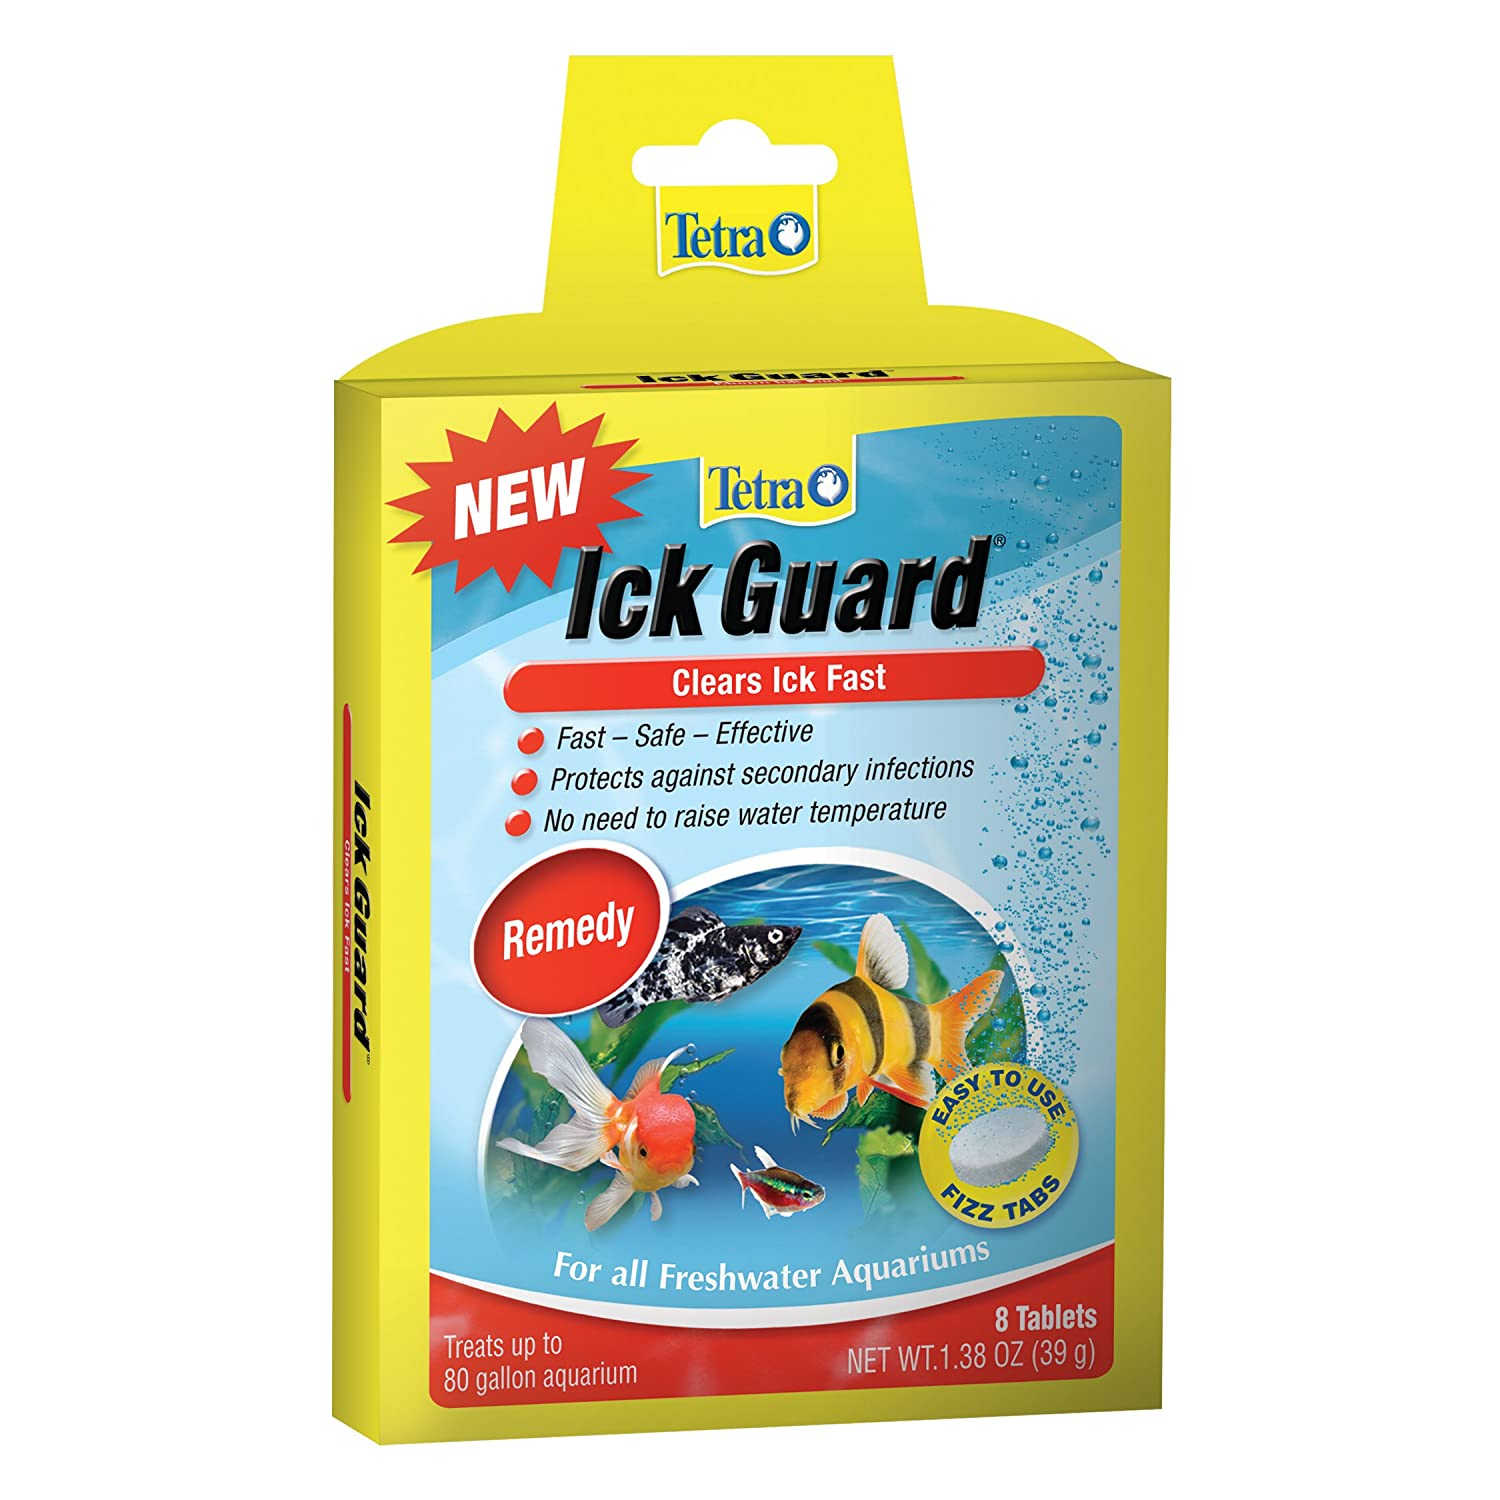 Tetra Ick Guard Aquarium Remedy, Easy to Use Fizz Tabs, 8-Count 77347